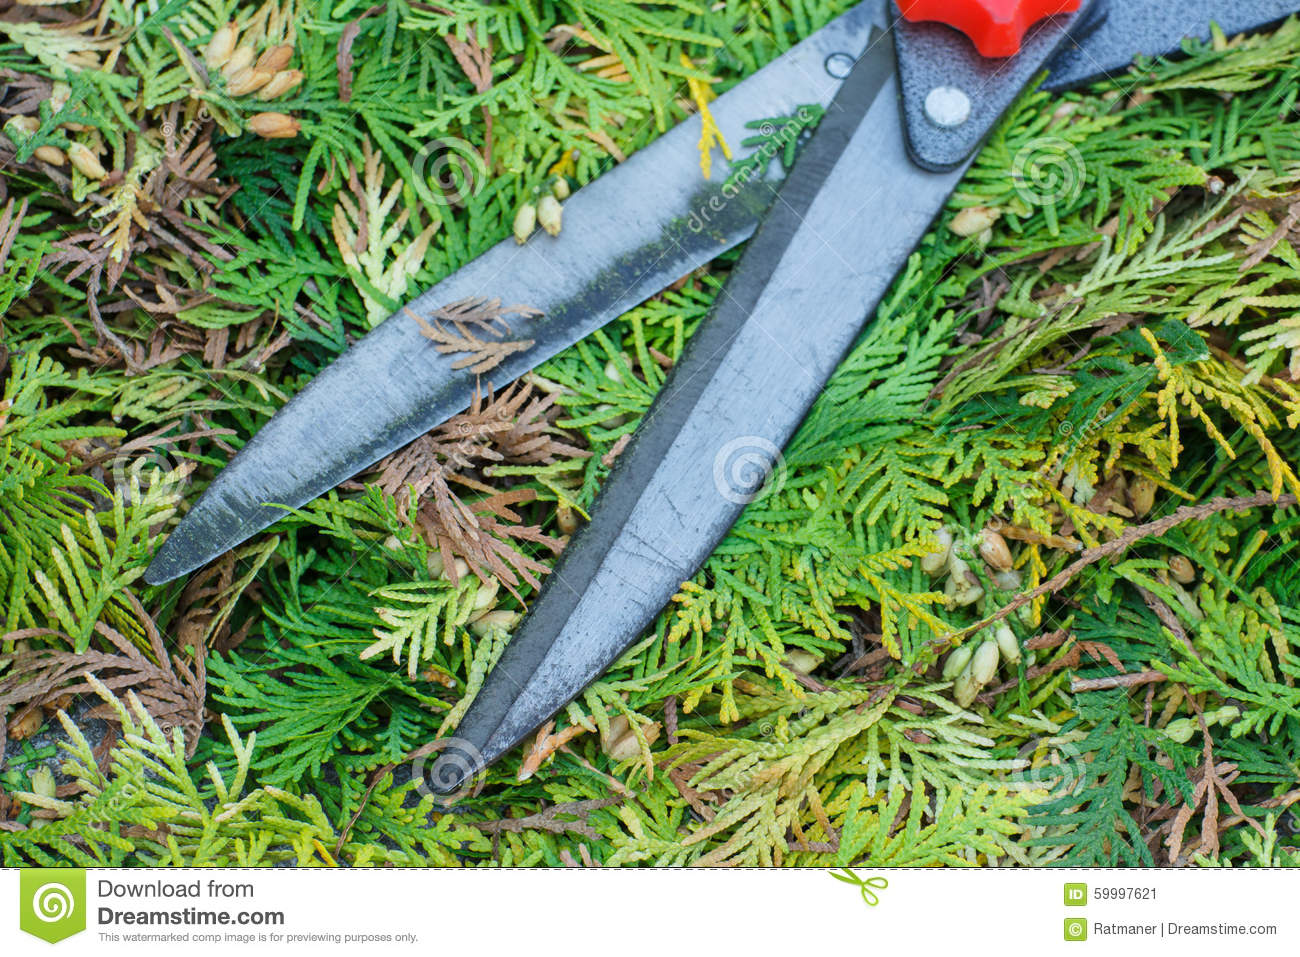 Gardening tool to trim bushes seasonal trimmed bushes for Gardeners trimming tool